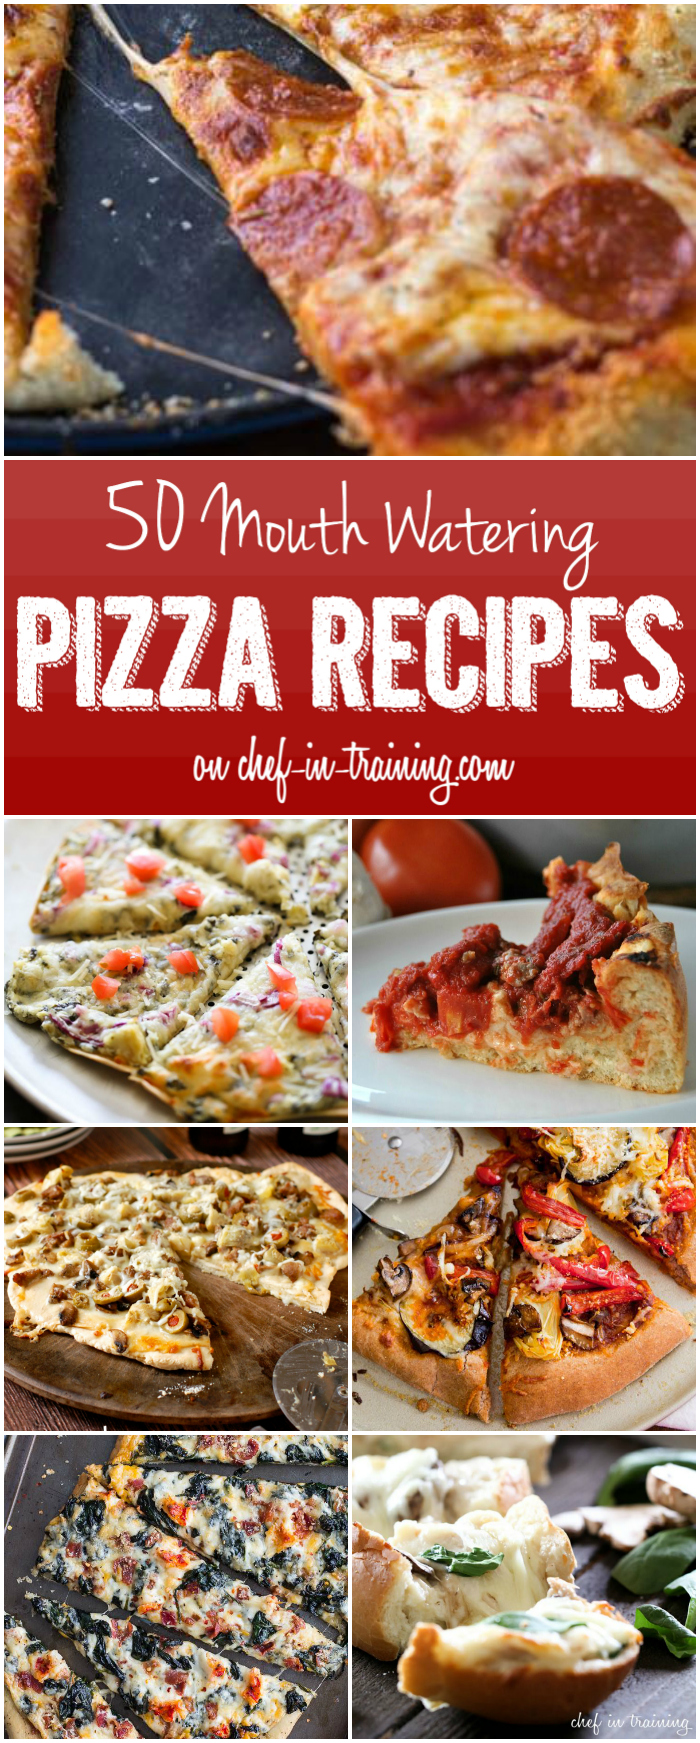 50 Mouth Watering Pizza Recipes at chef-in-training.com …So many great options for the next pizza night!